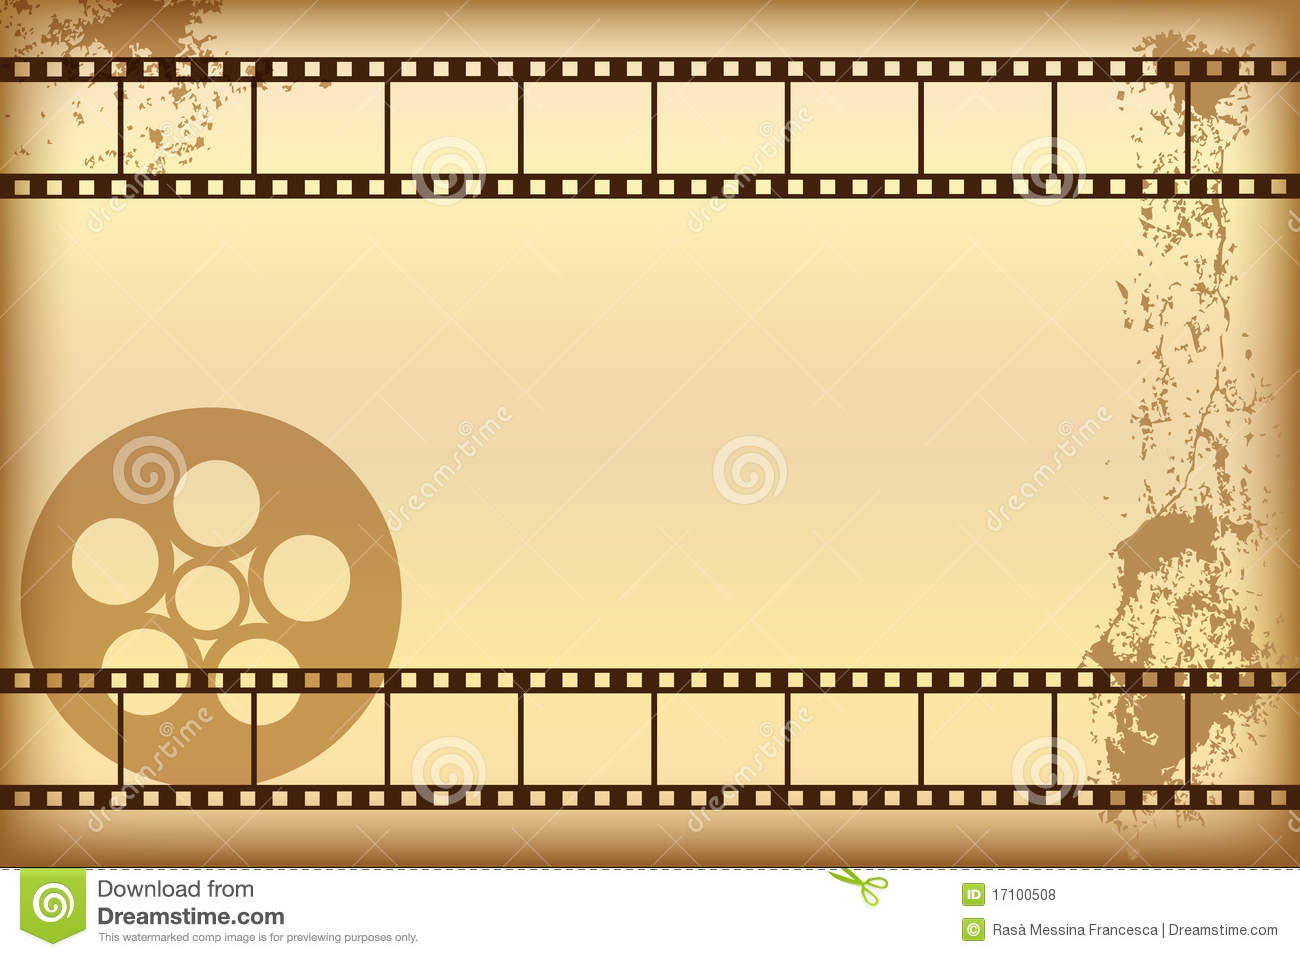 Free Movie Wallpapers - WallpaperSafari Kids Movie Posters